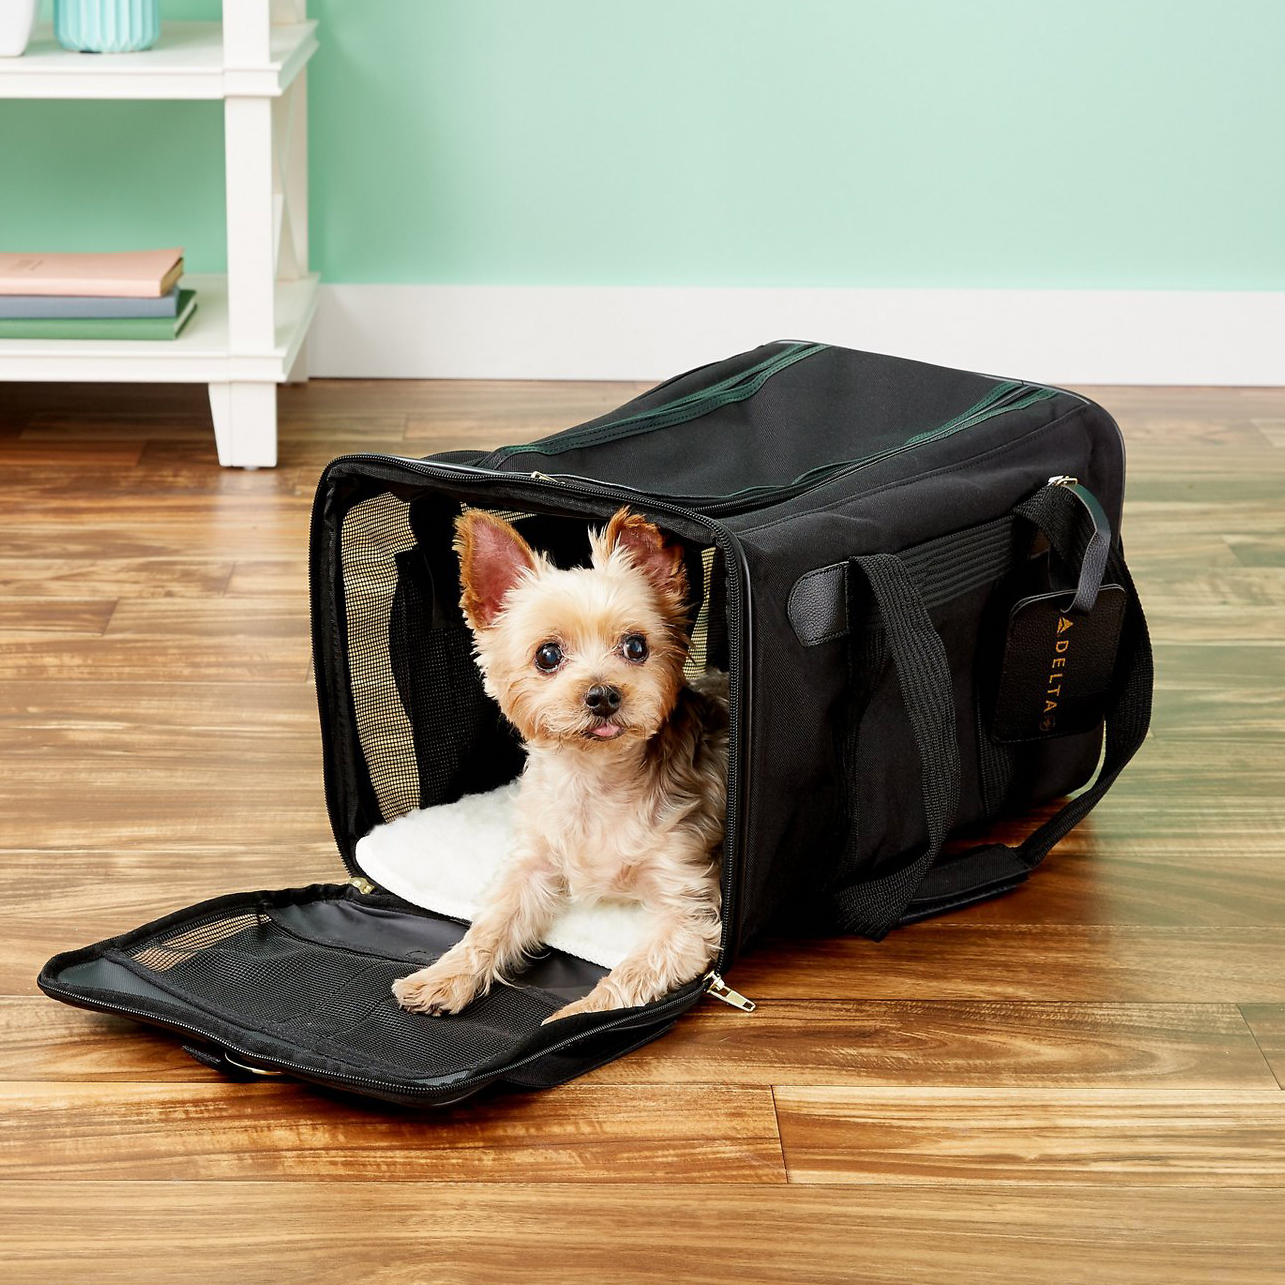 sherpa-delta-airline-approved-dog-and-cat-carrier-bag